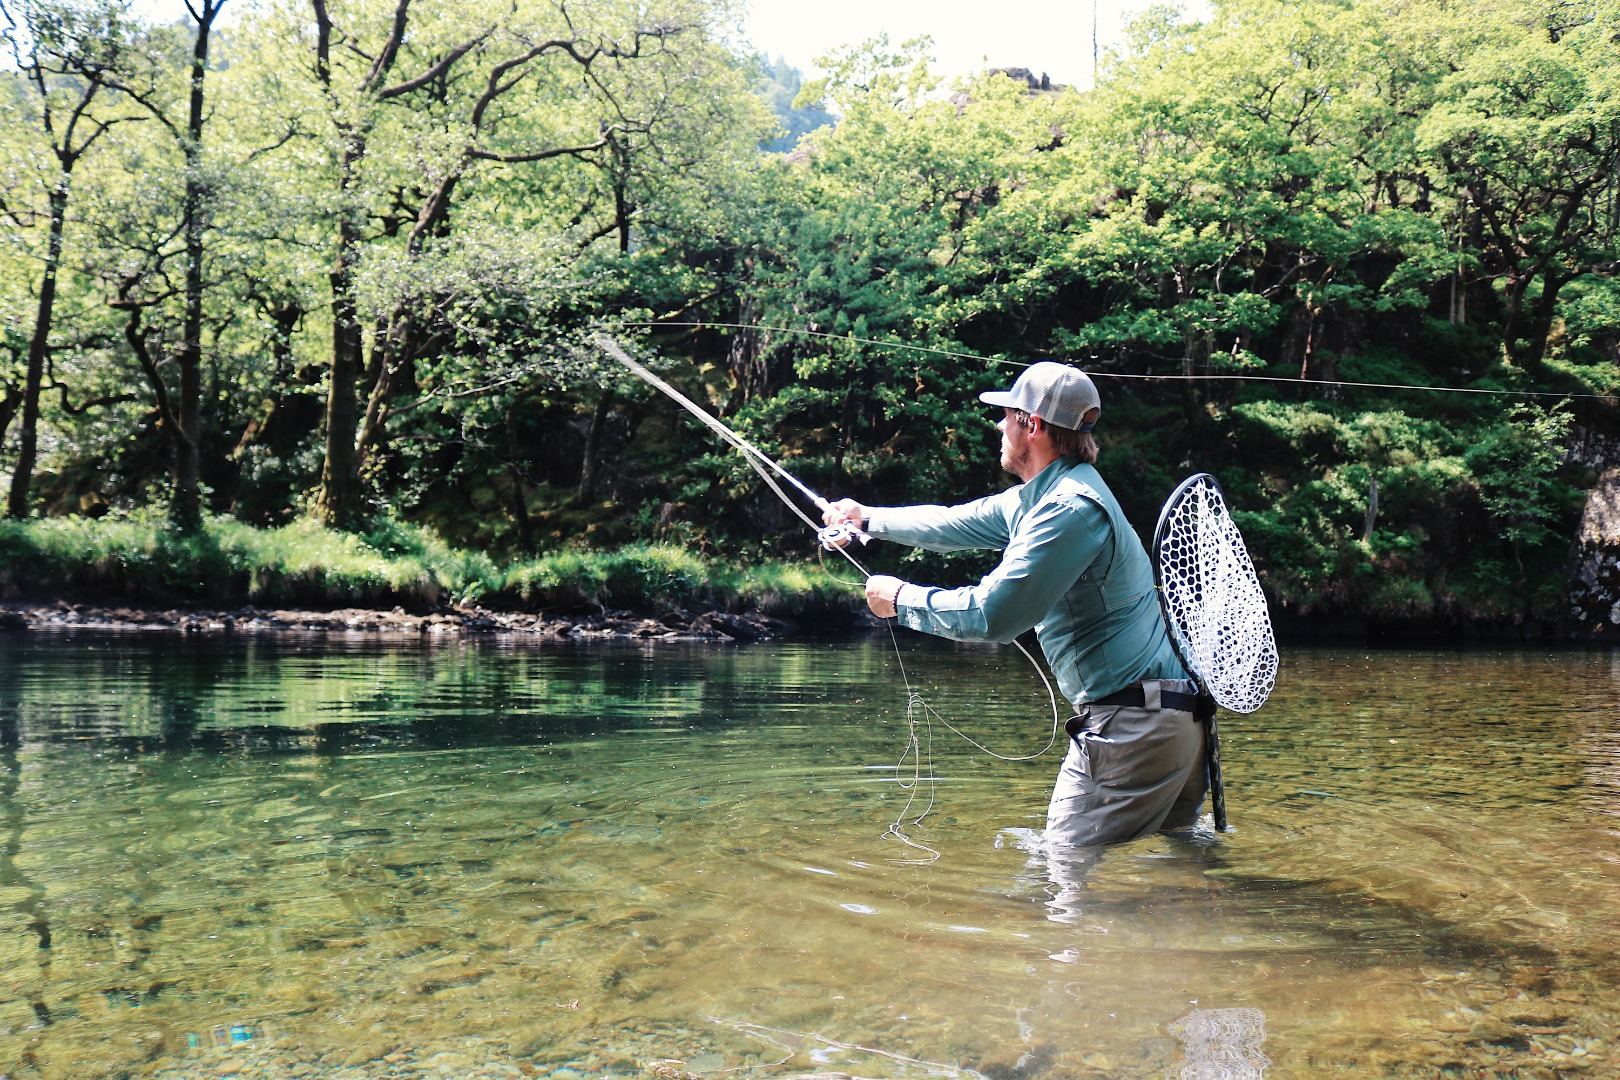 Fly fishing on the River Derwent